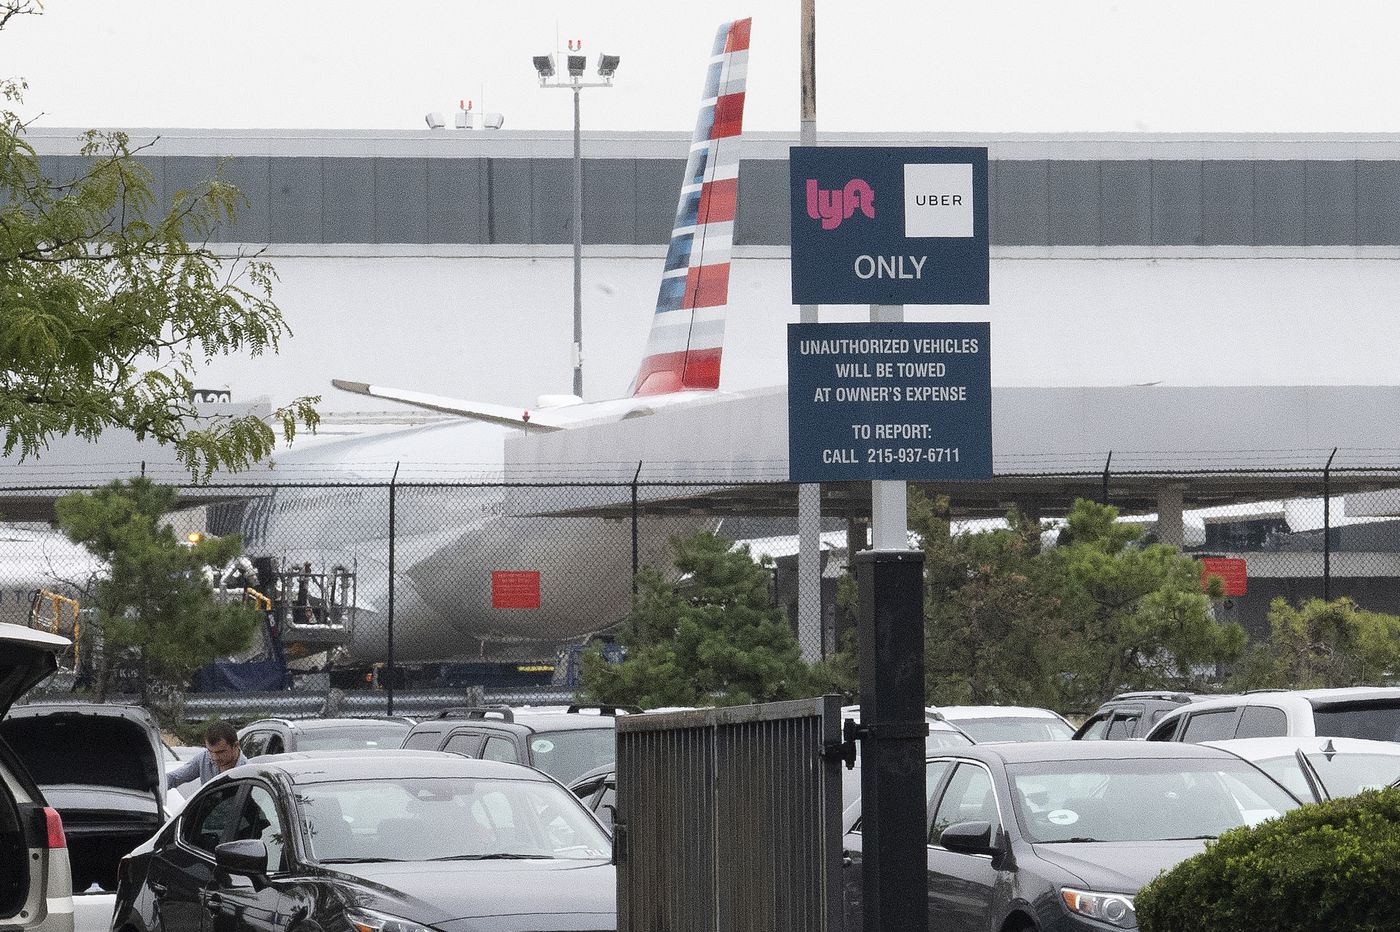 At Philly airport, Uber and Lyft drivers wait and wait